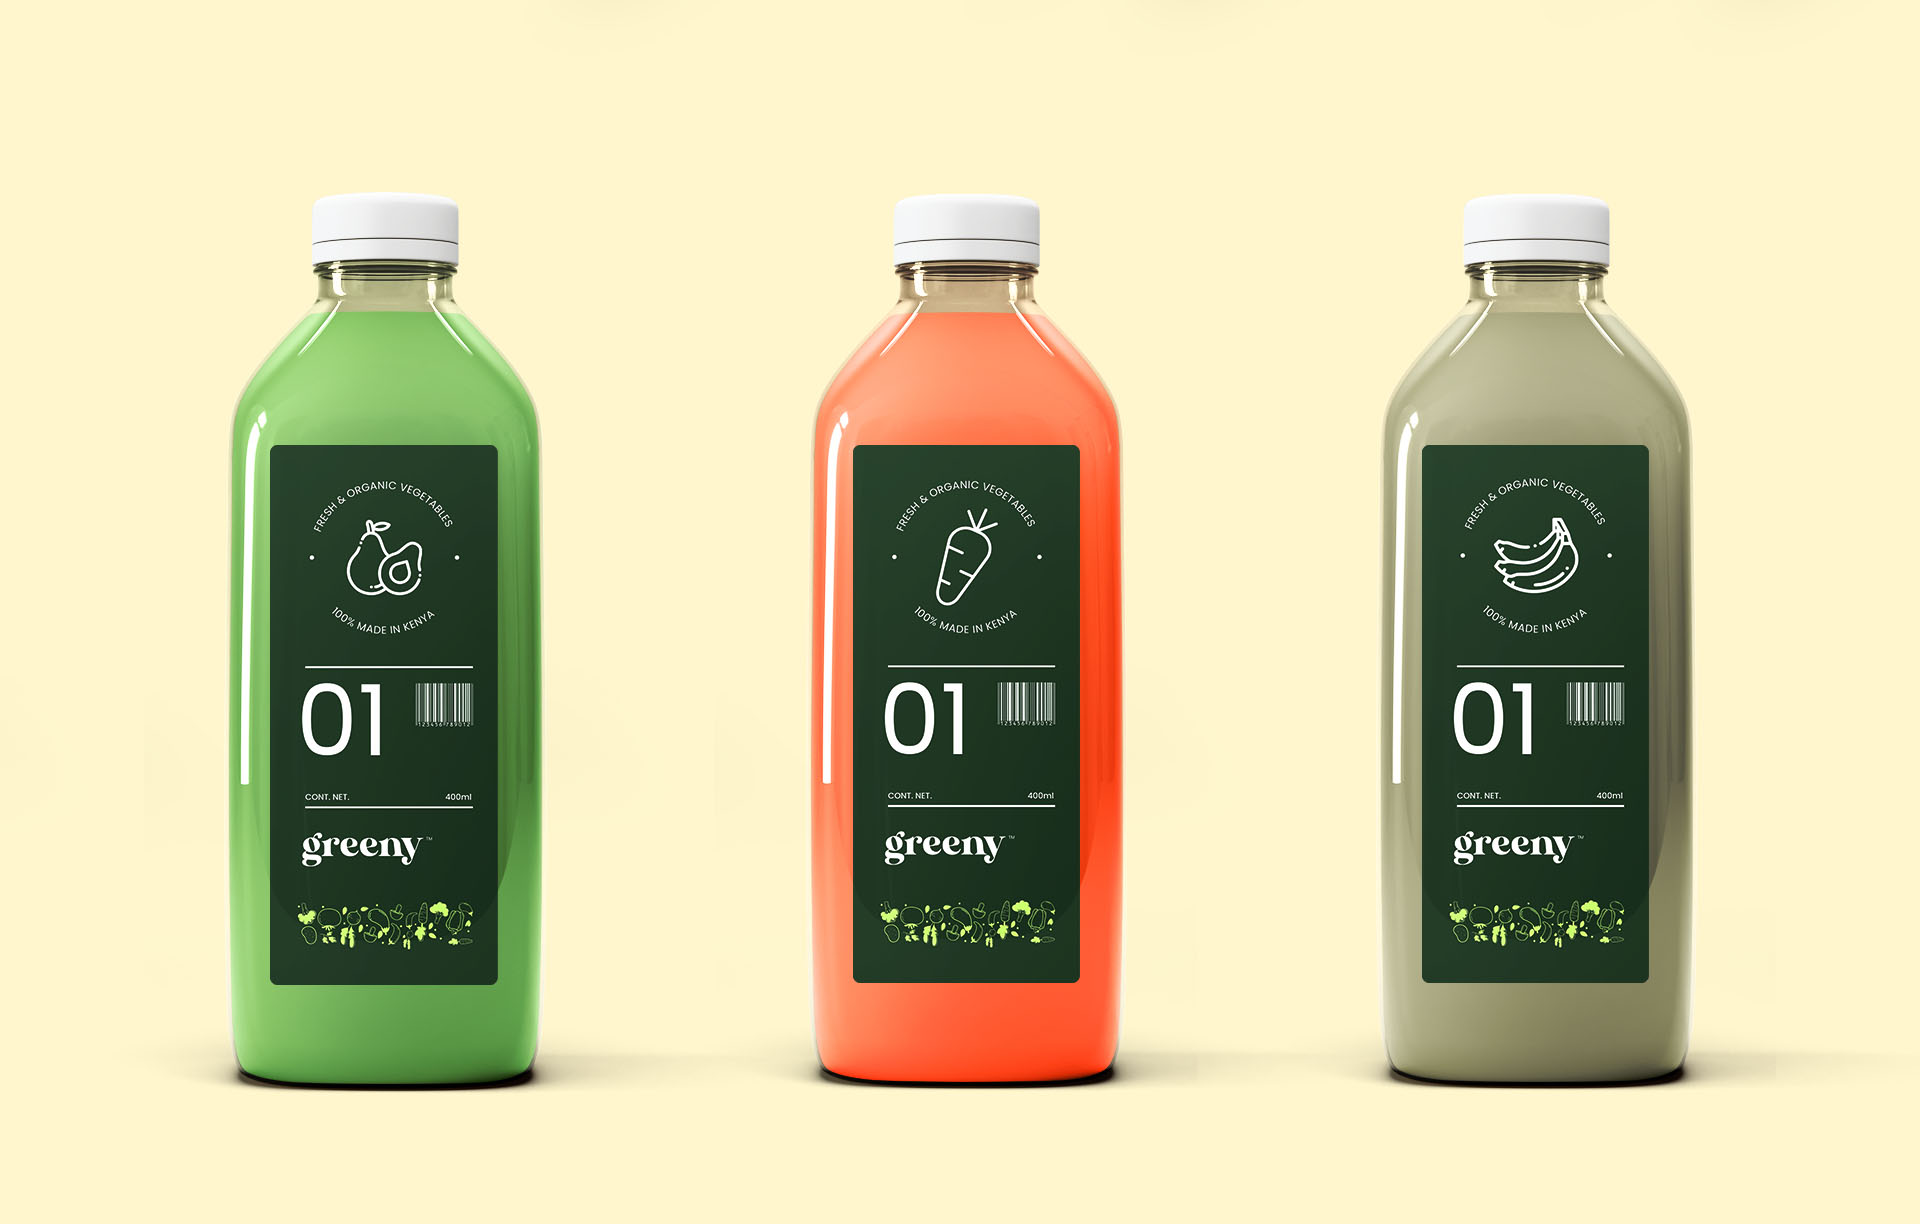 Greeny flavored juices